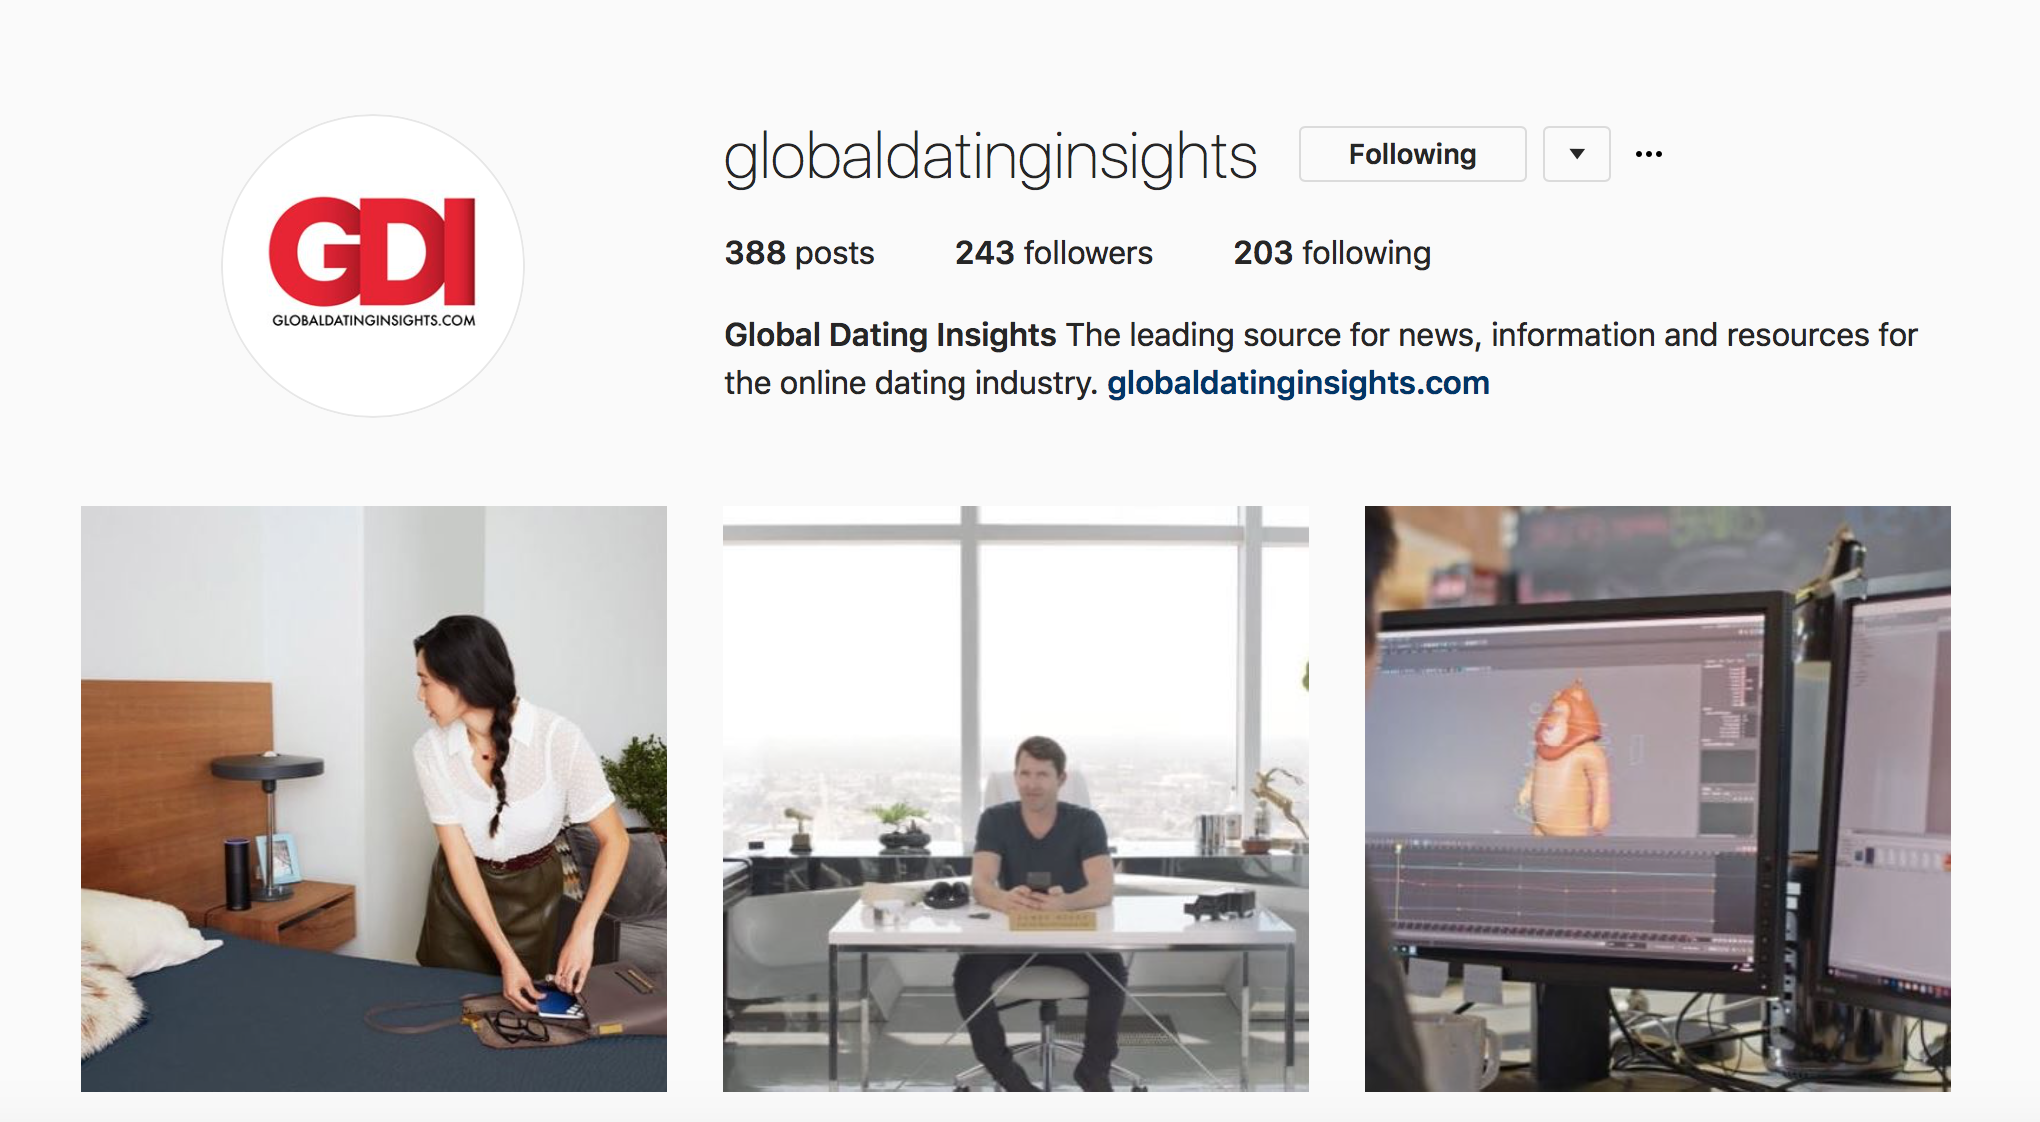 Follow Our Instagram Page For Daily News Highlights